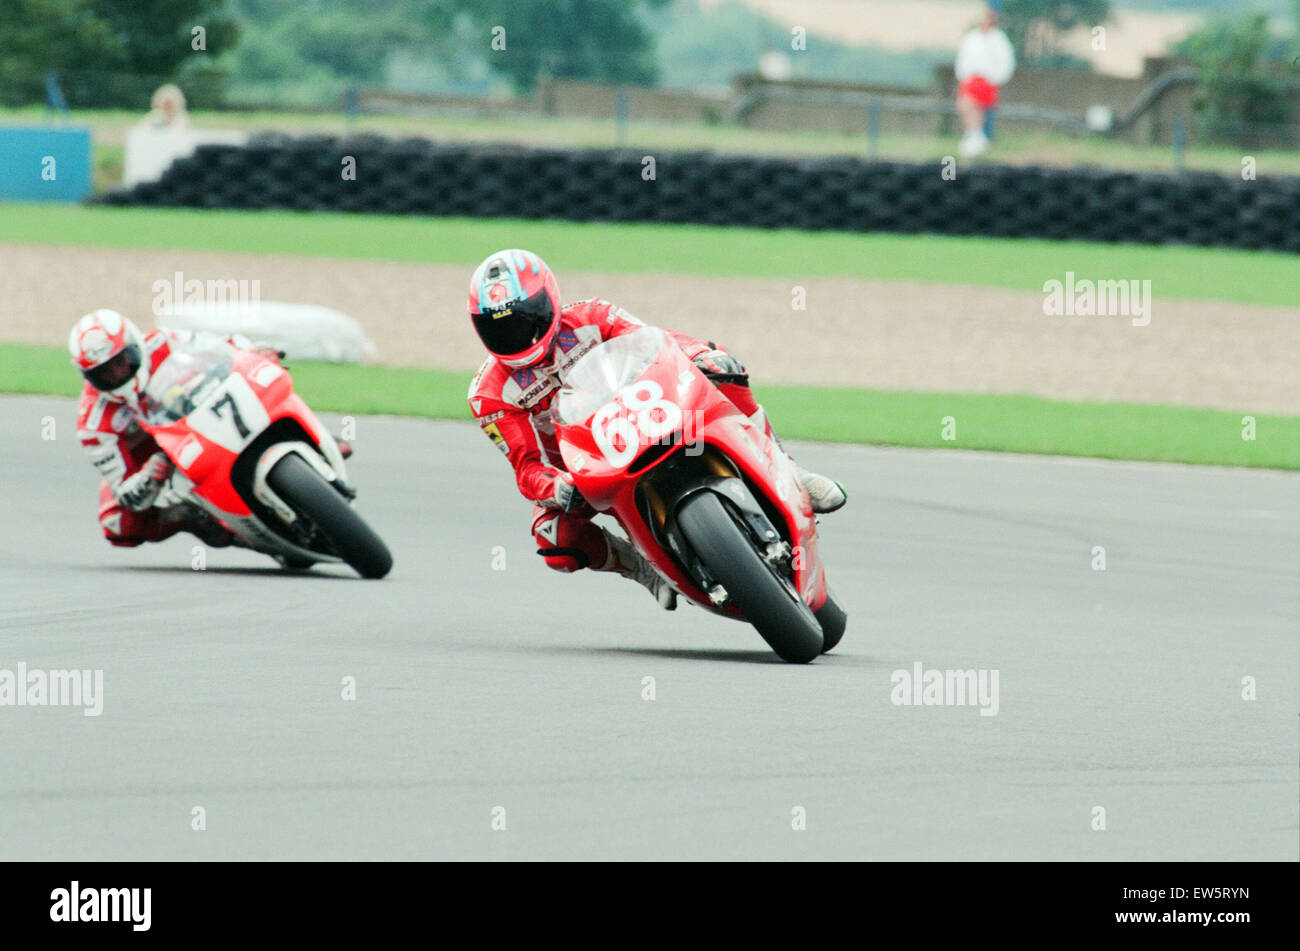 1993 500 CC British Motorcycle Grand Prix, Donington Park, 1st August 1993. No. 68 Carl Fogarty racing a Cagiva Stock Photo